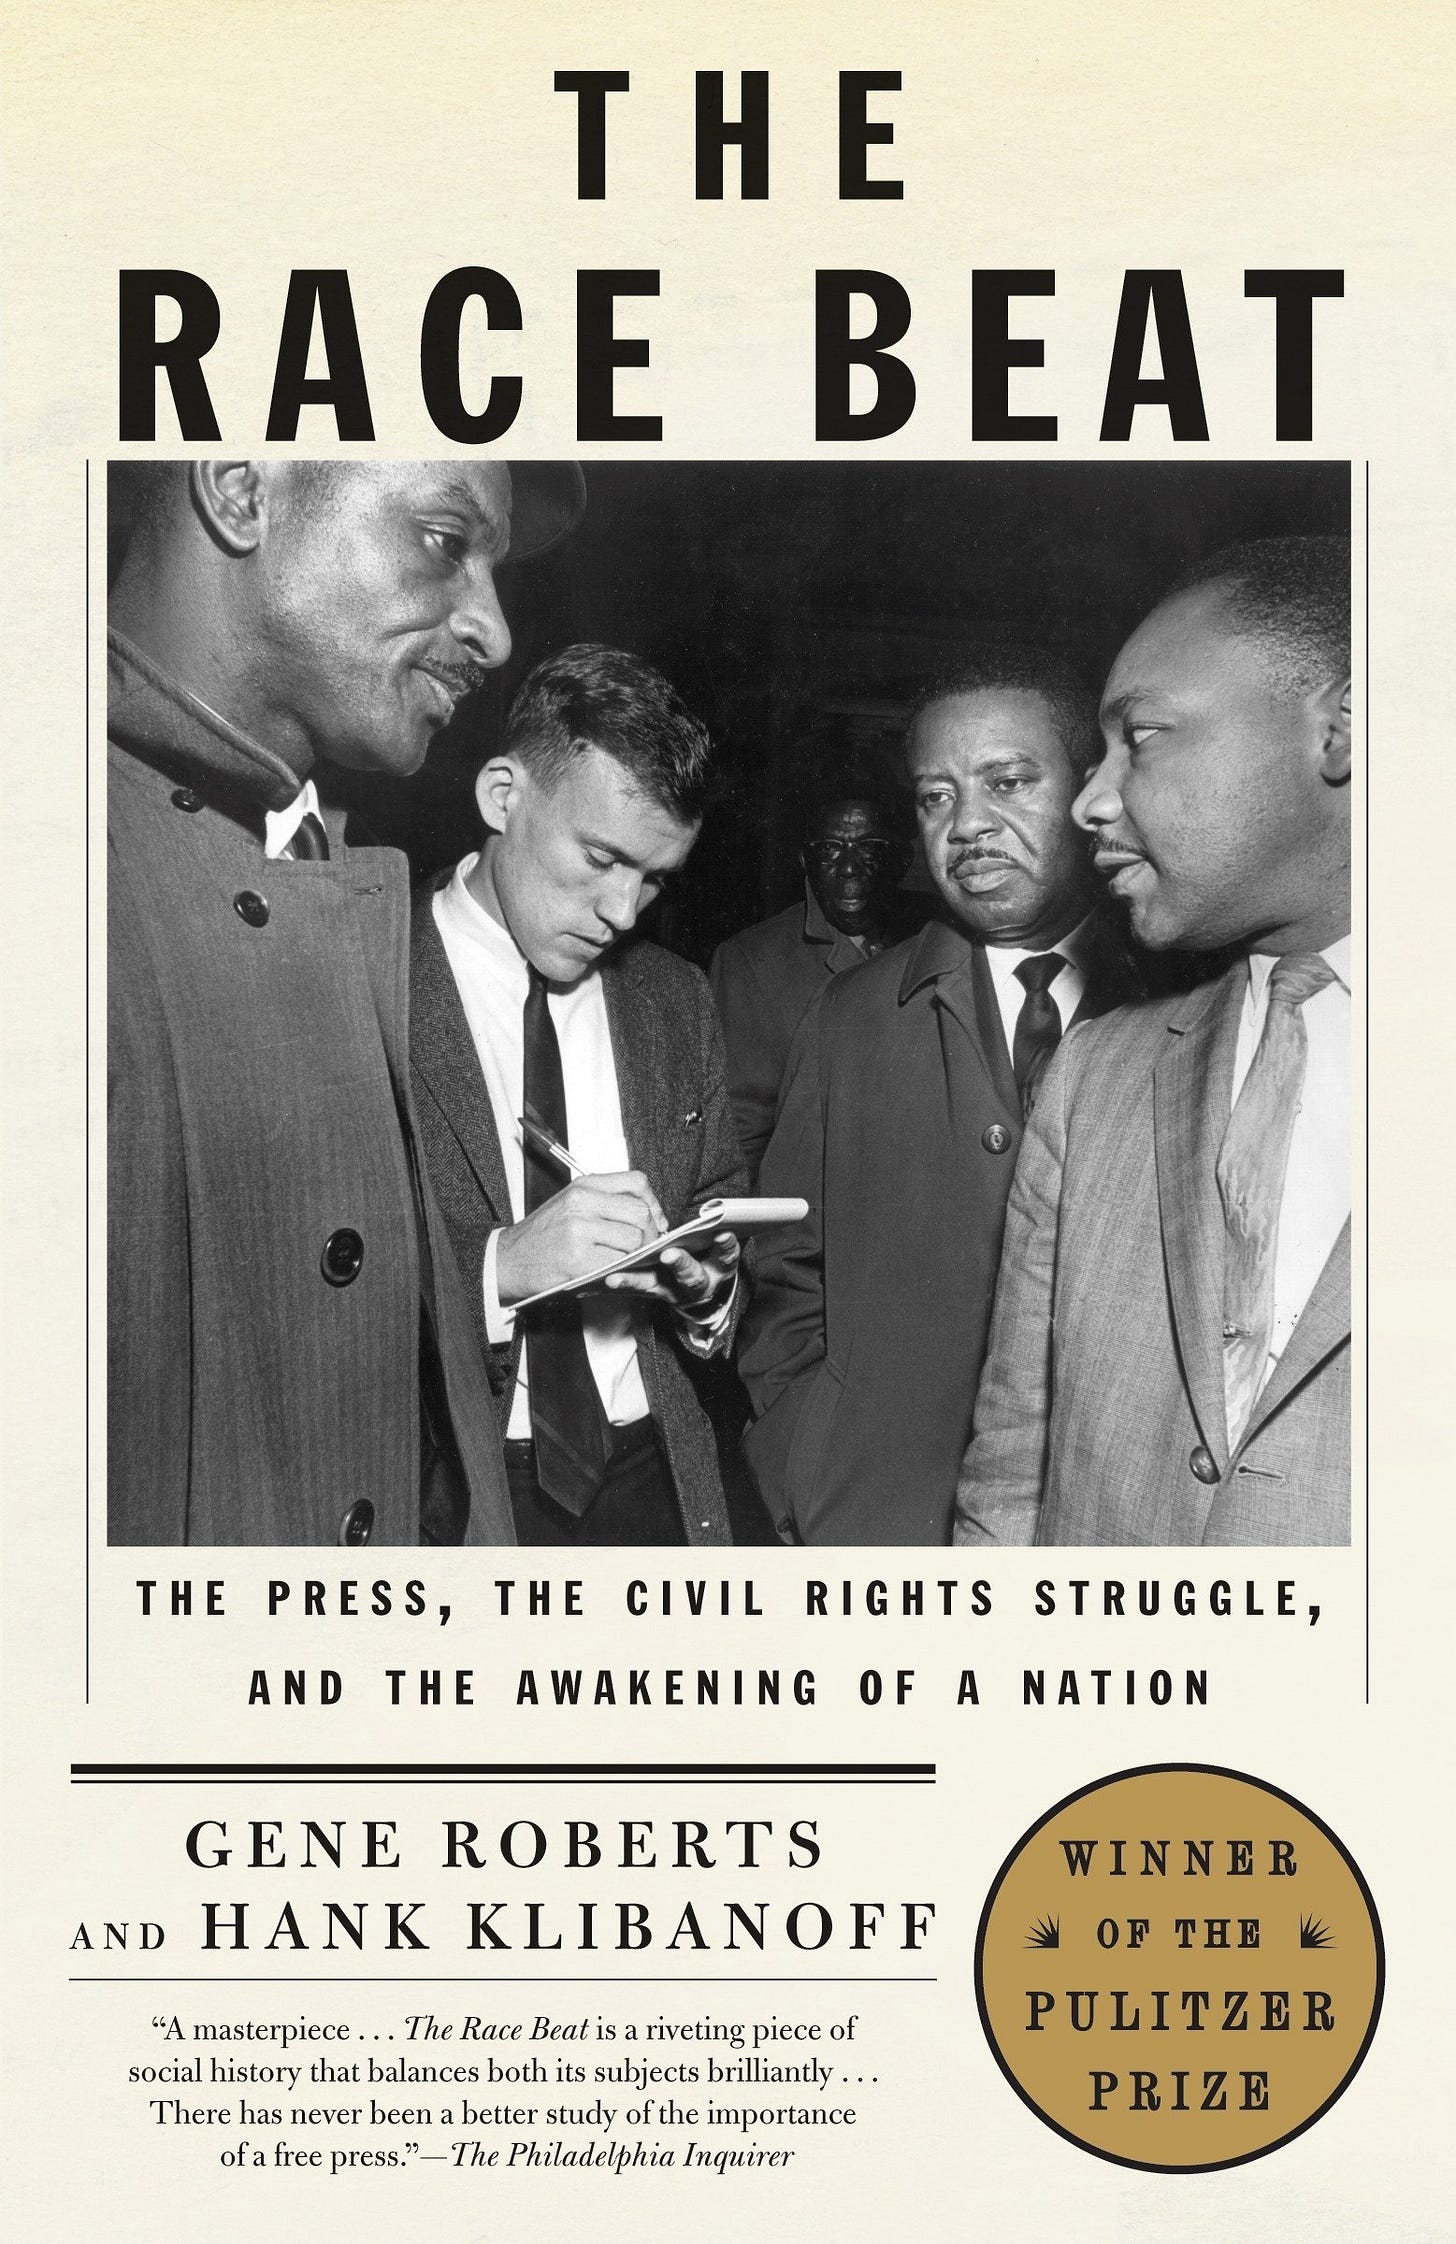 The cover of The Race Beat by Gene Roberts & Hank Klibanoff